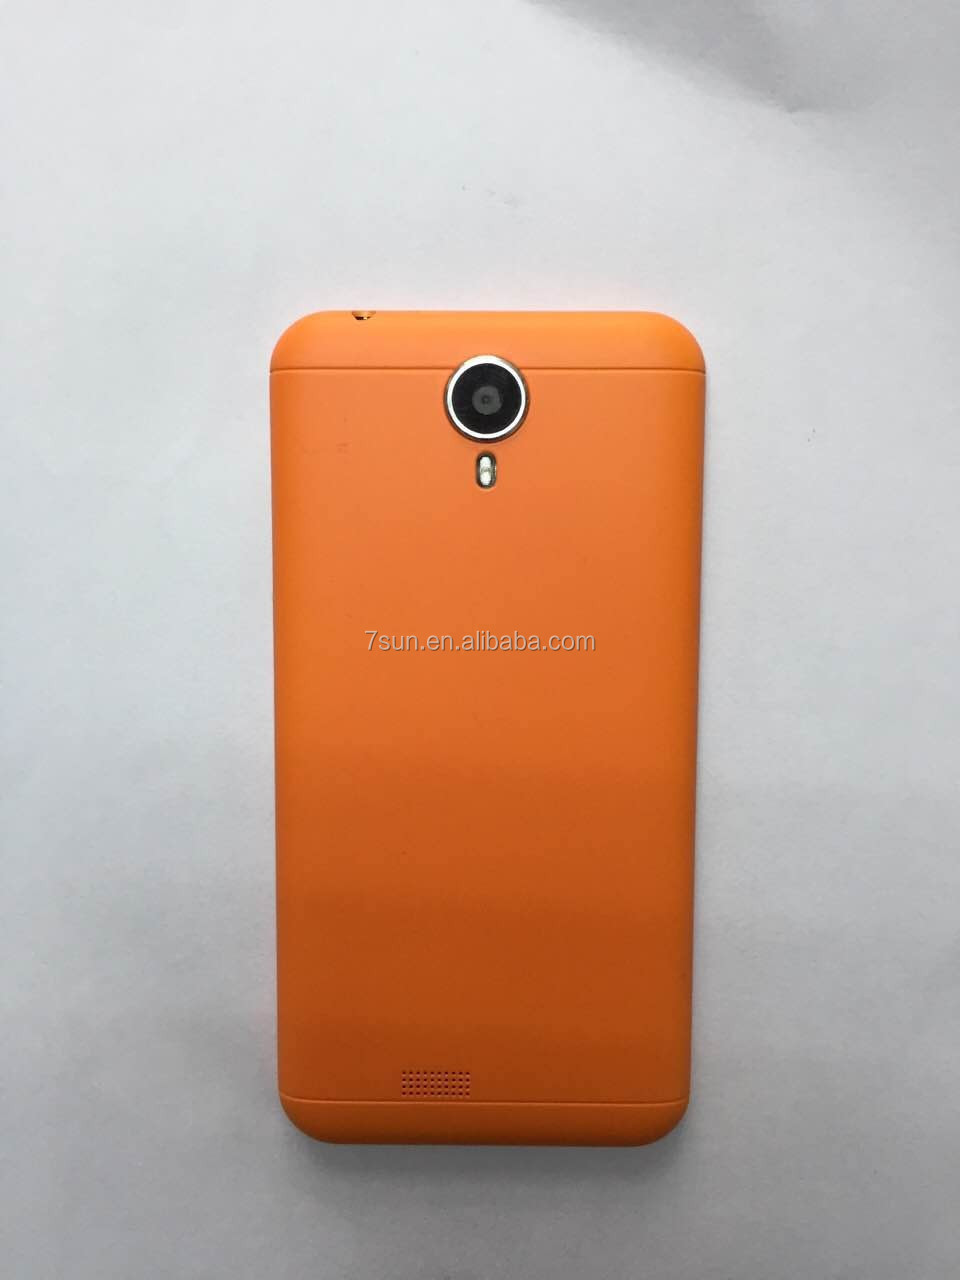 Phone Cheapest Chinese Android Phone 4 0 ss3 android mtk6572 512mb 4gb china cheapest 3g phone mobile